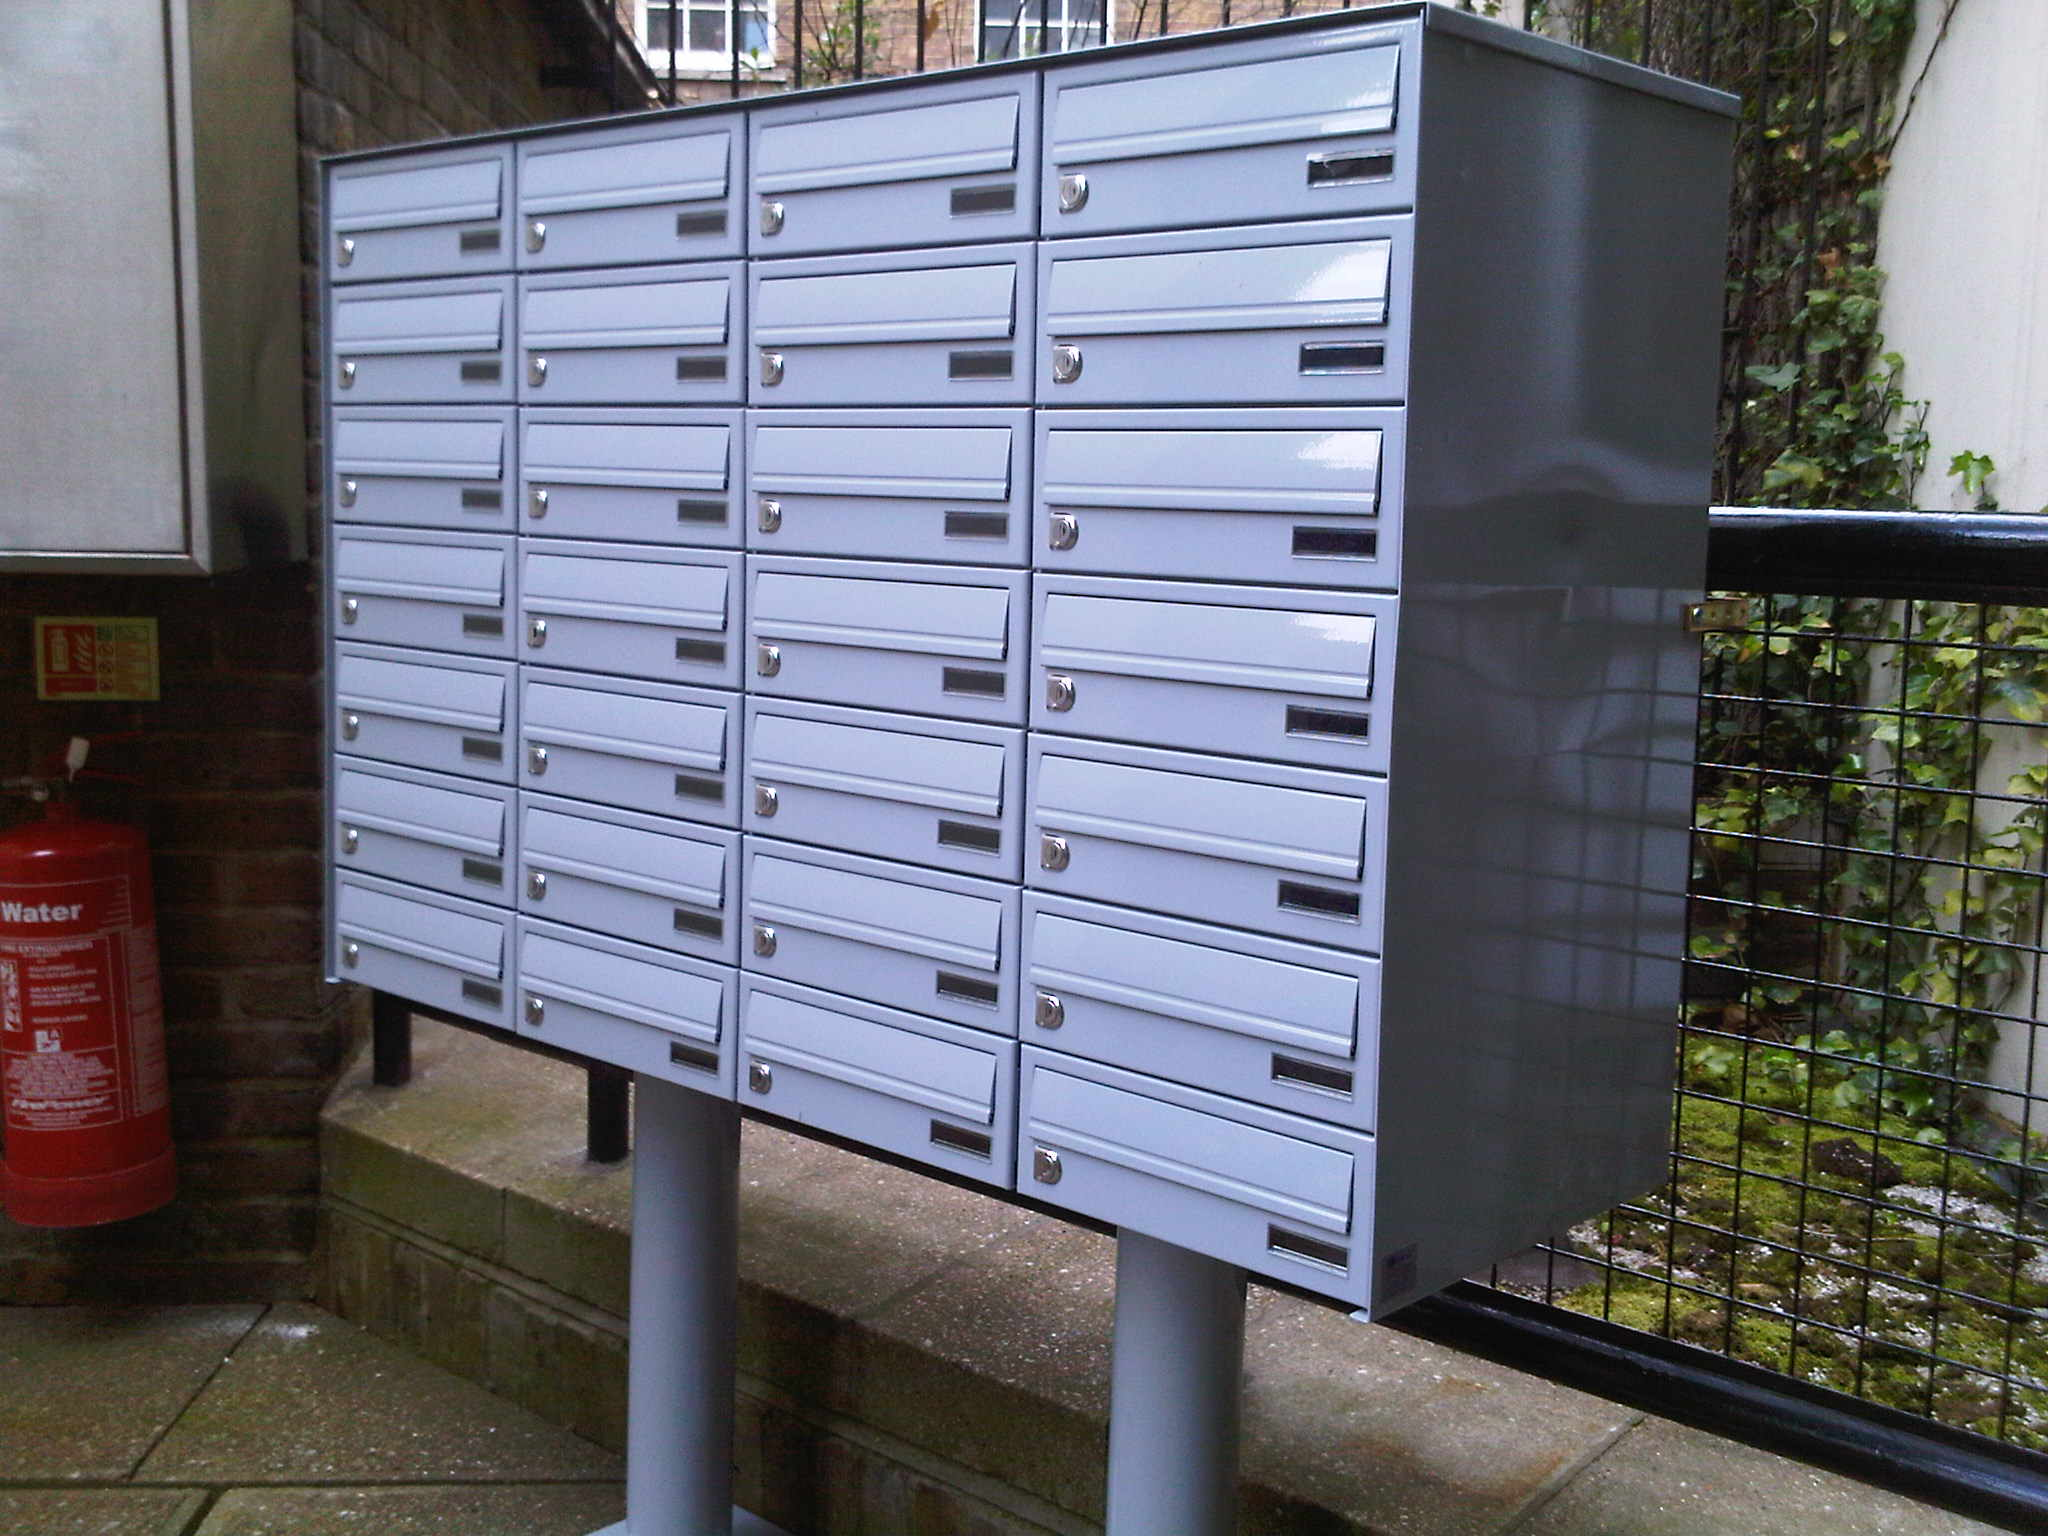 Anti Theft System >> Freestanding Letter Boxes | The Postbox Shop | Range